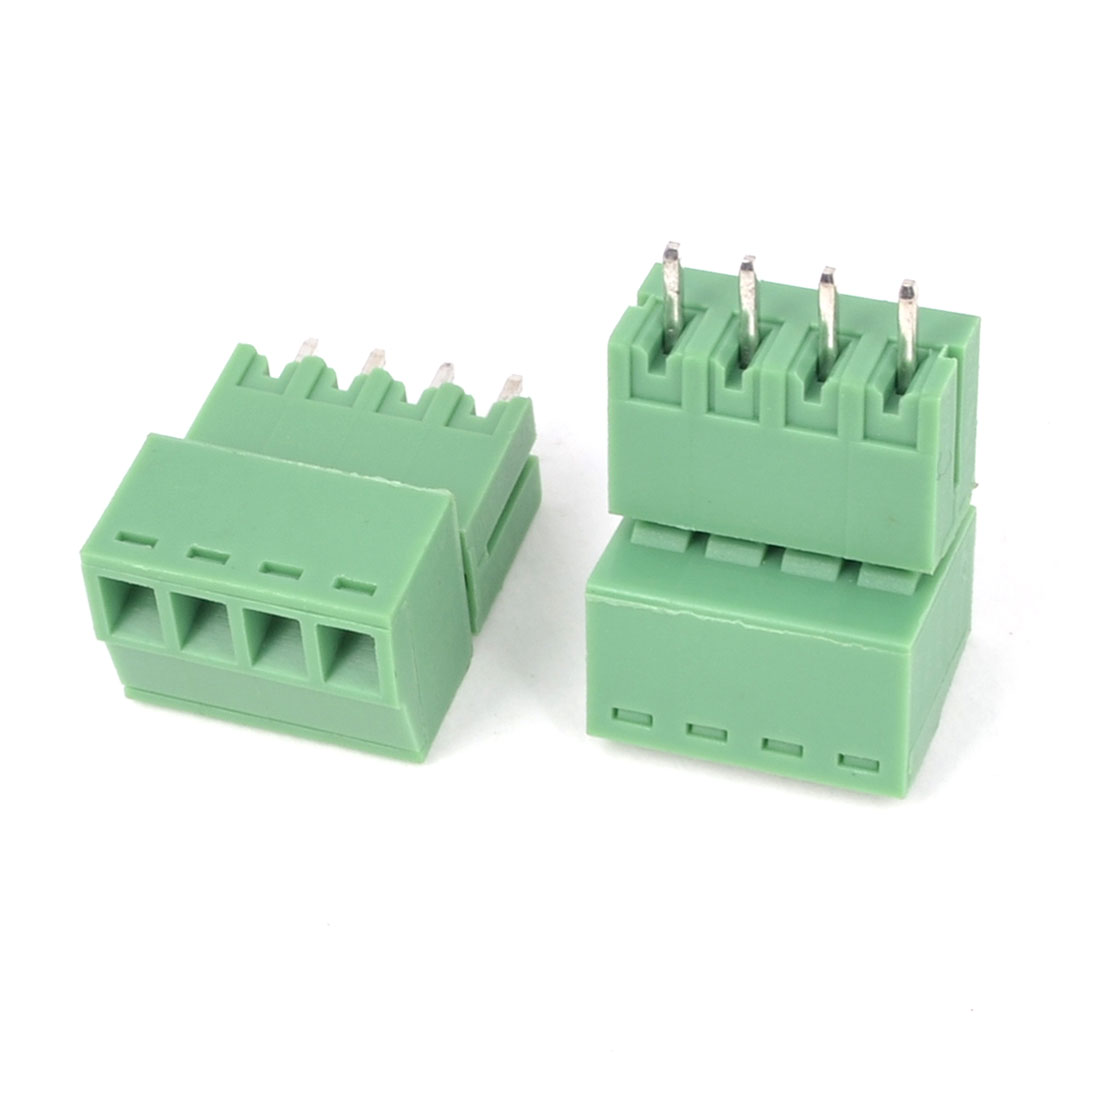 2Pcs 300V 8A 4P Pins 3.5mm Pitch PCB Screw Terminal Block Connector Green